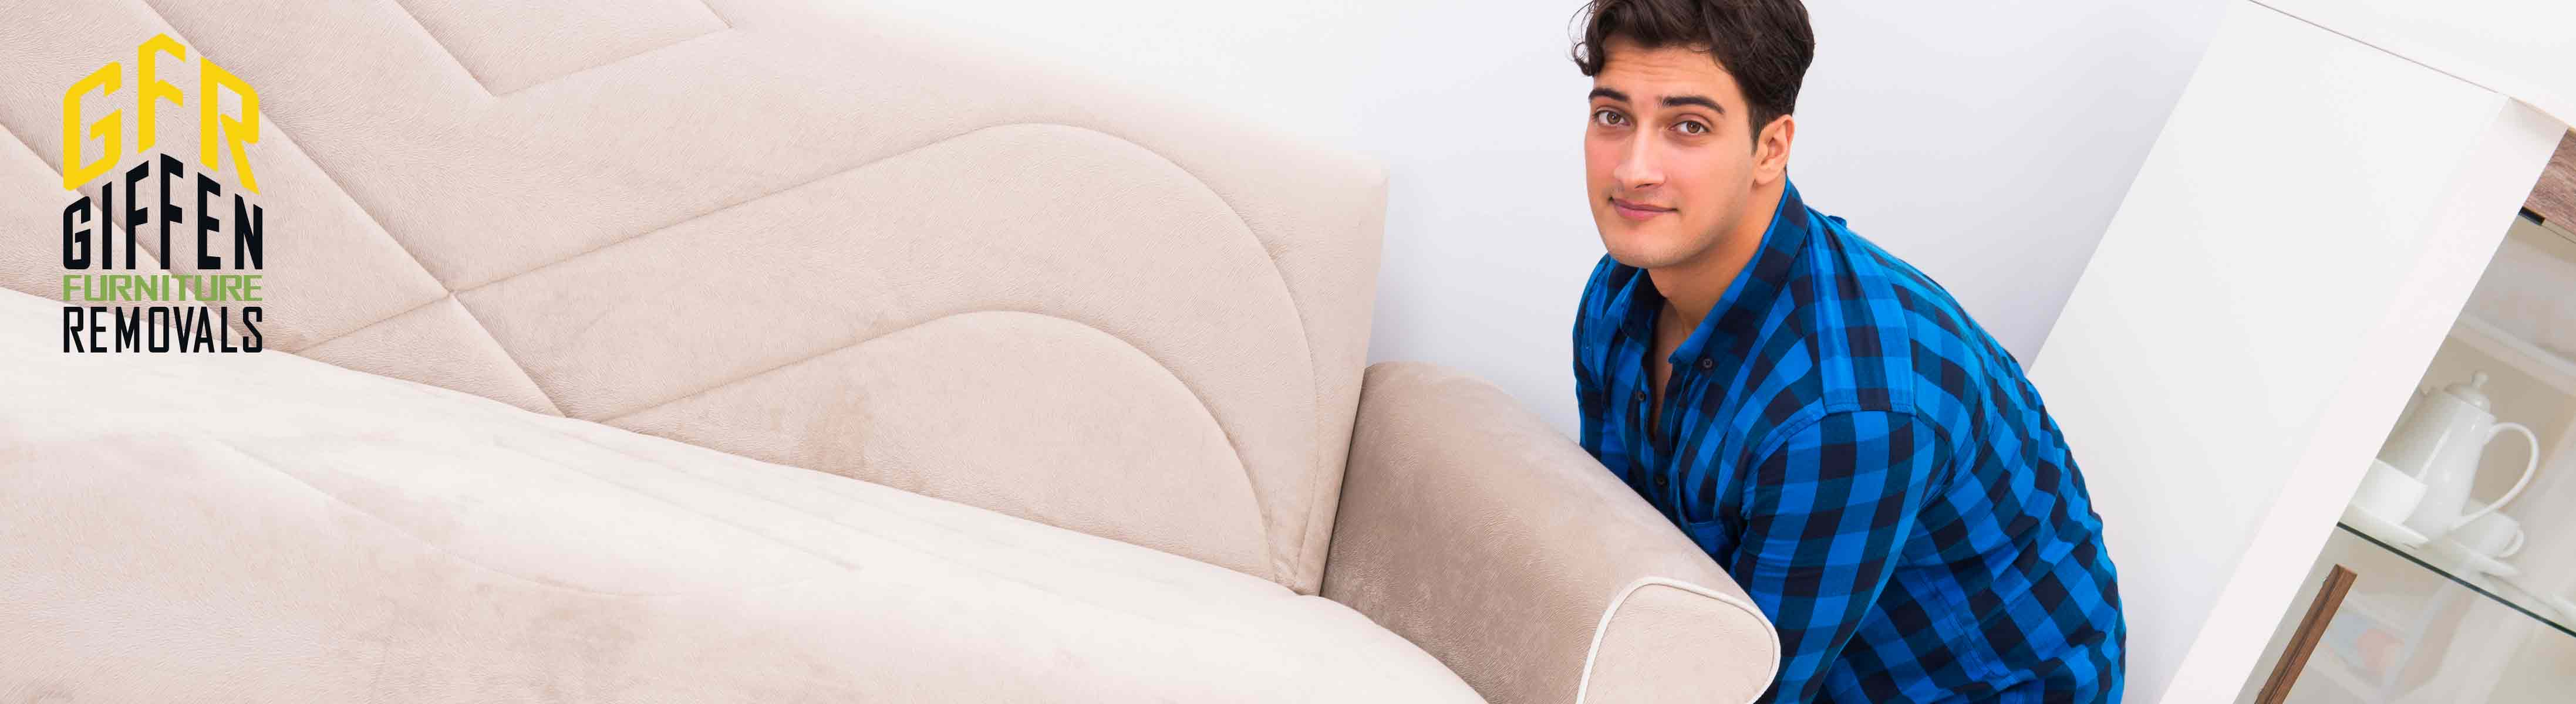 Giffen Furniture Removals Top 10 Tips For Moving Furniture